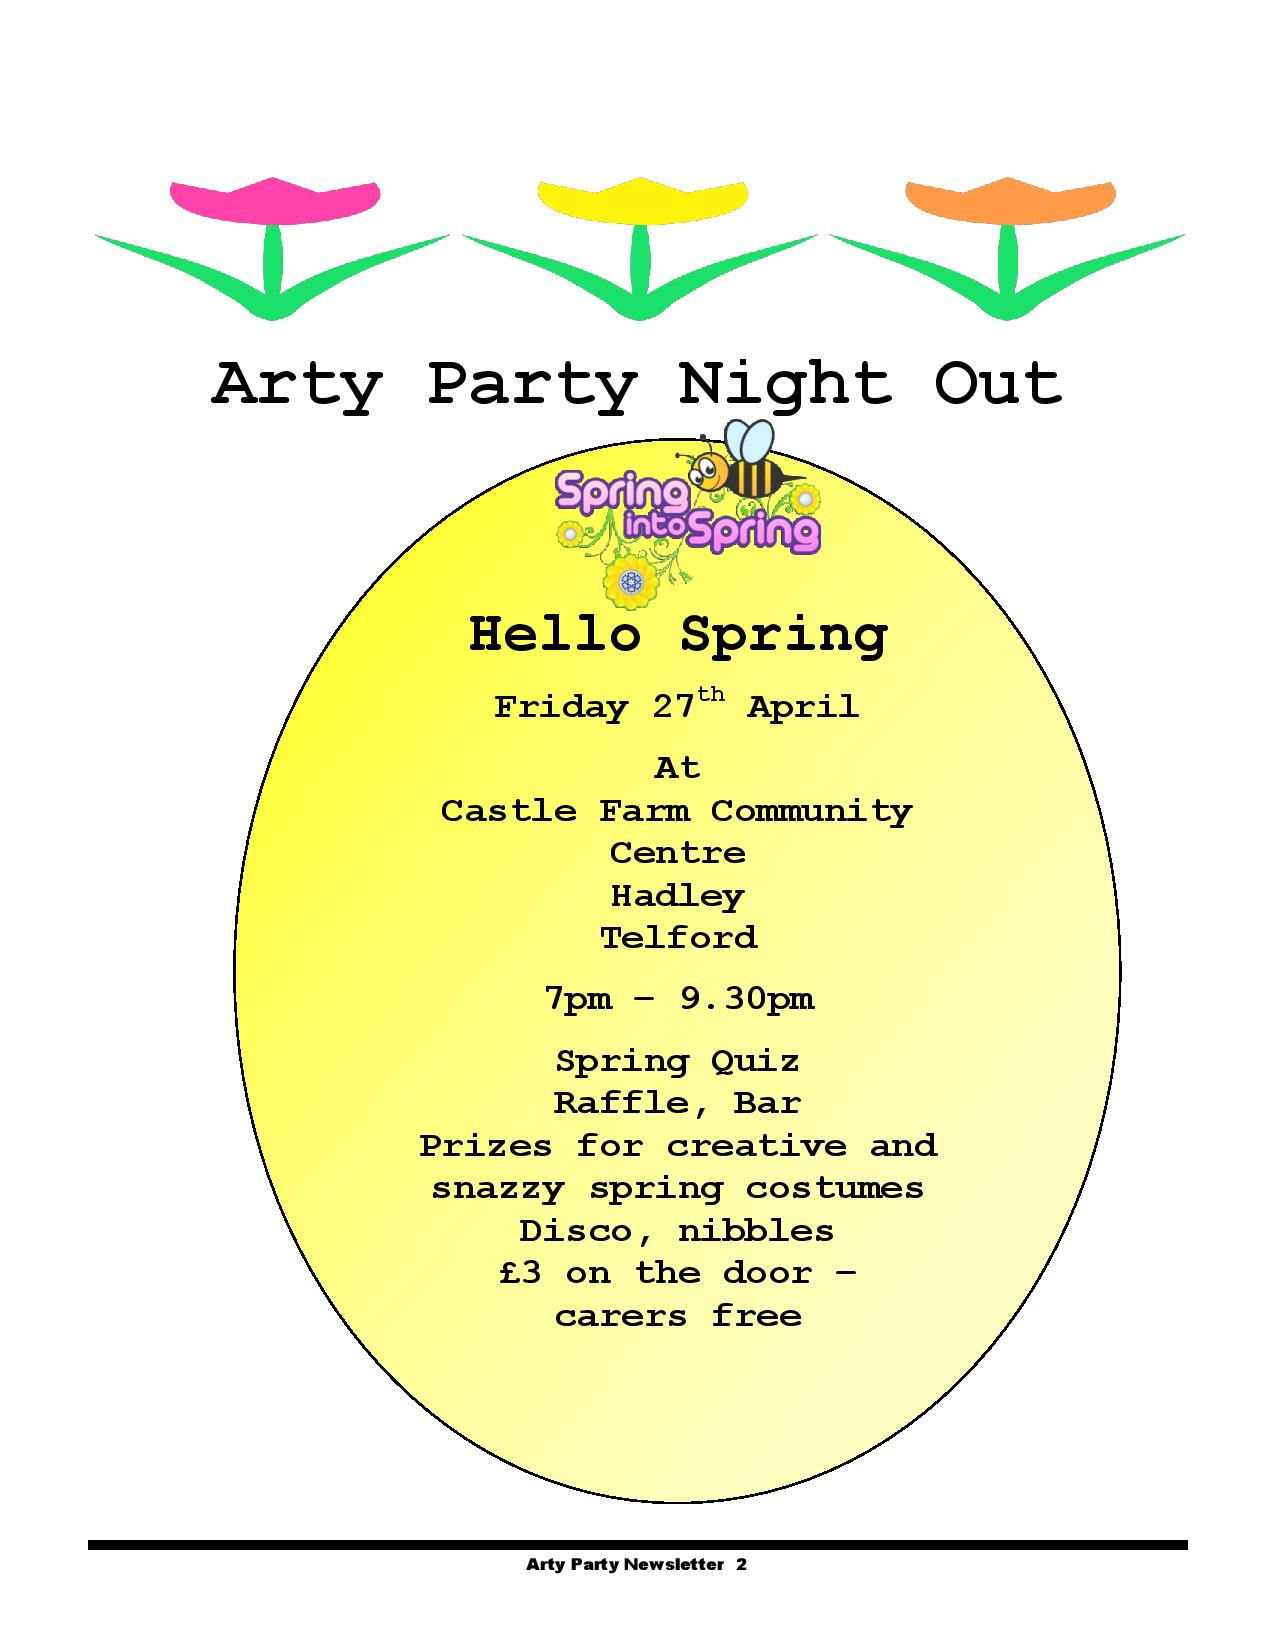 Arty Party Newsletter 190418-page-002